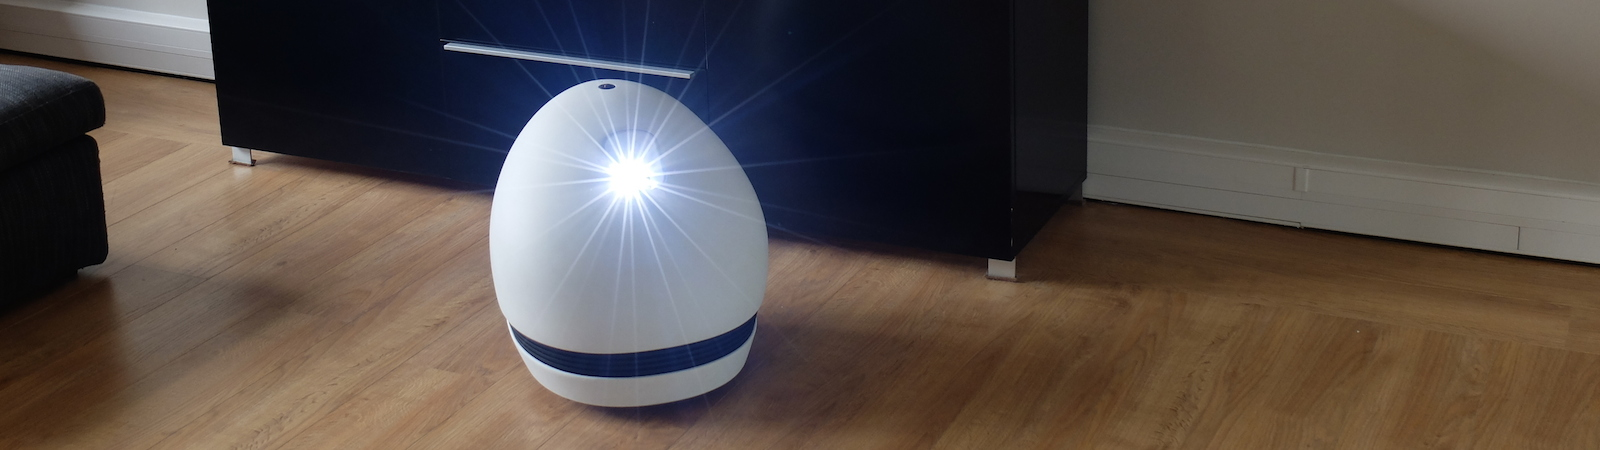 KEECKER Is a Brilliant Self-Propelling Entertainment Robot